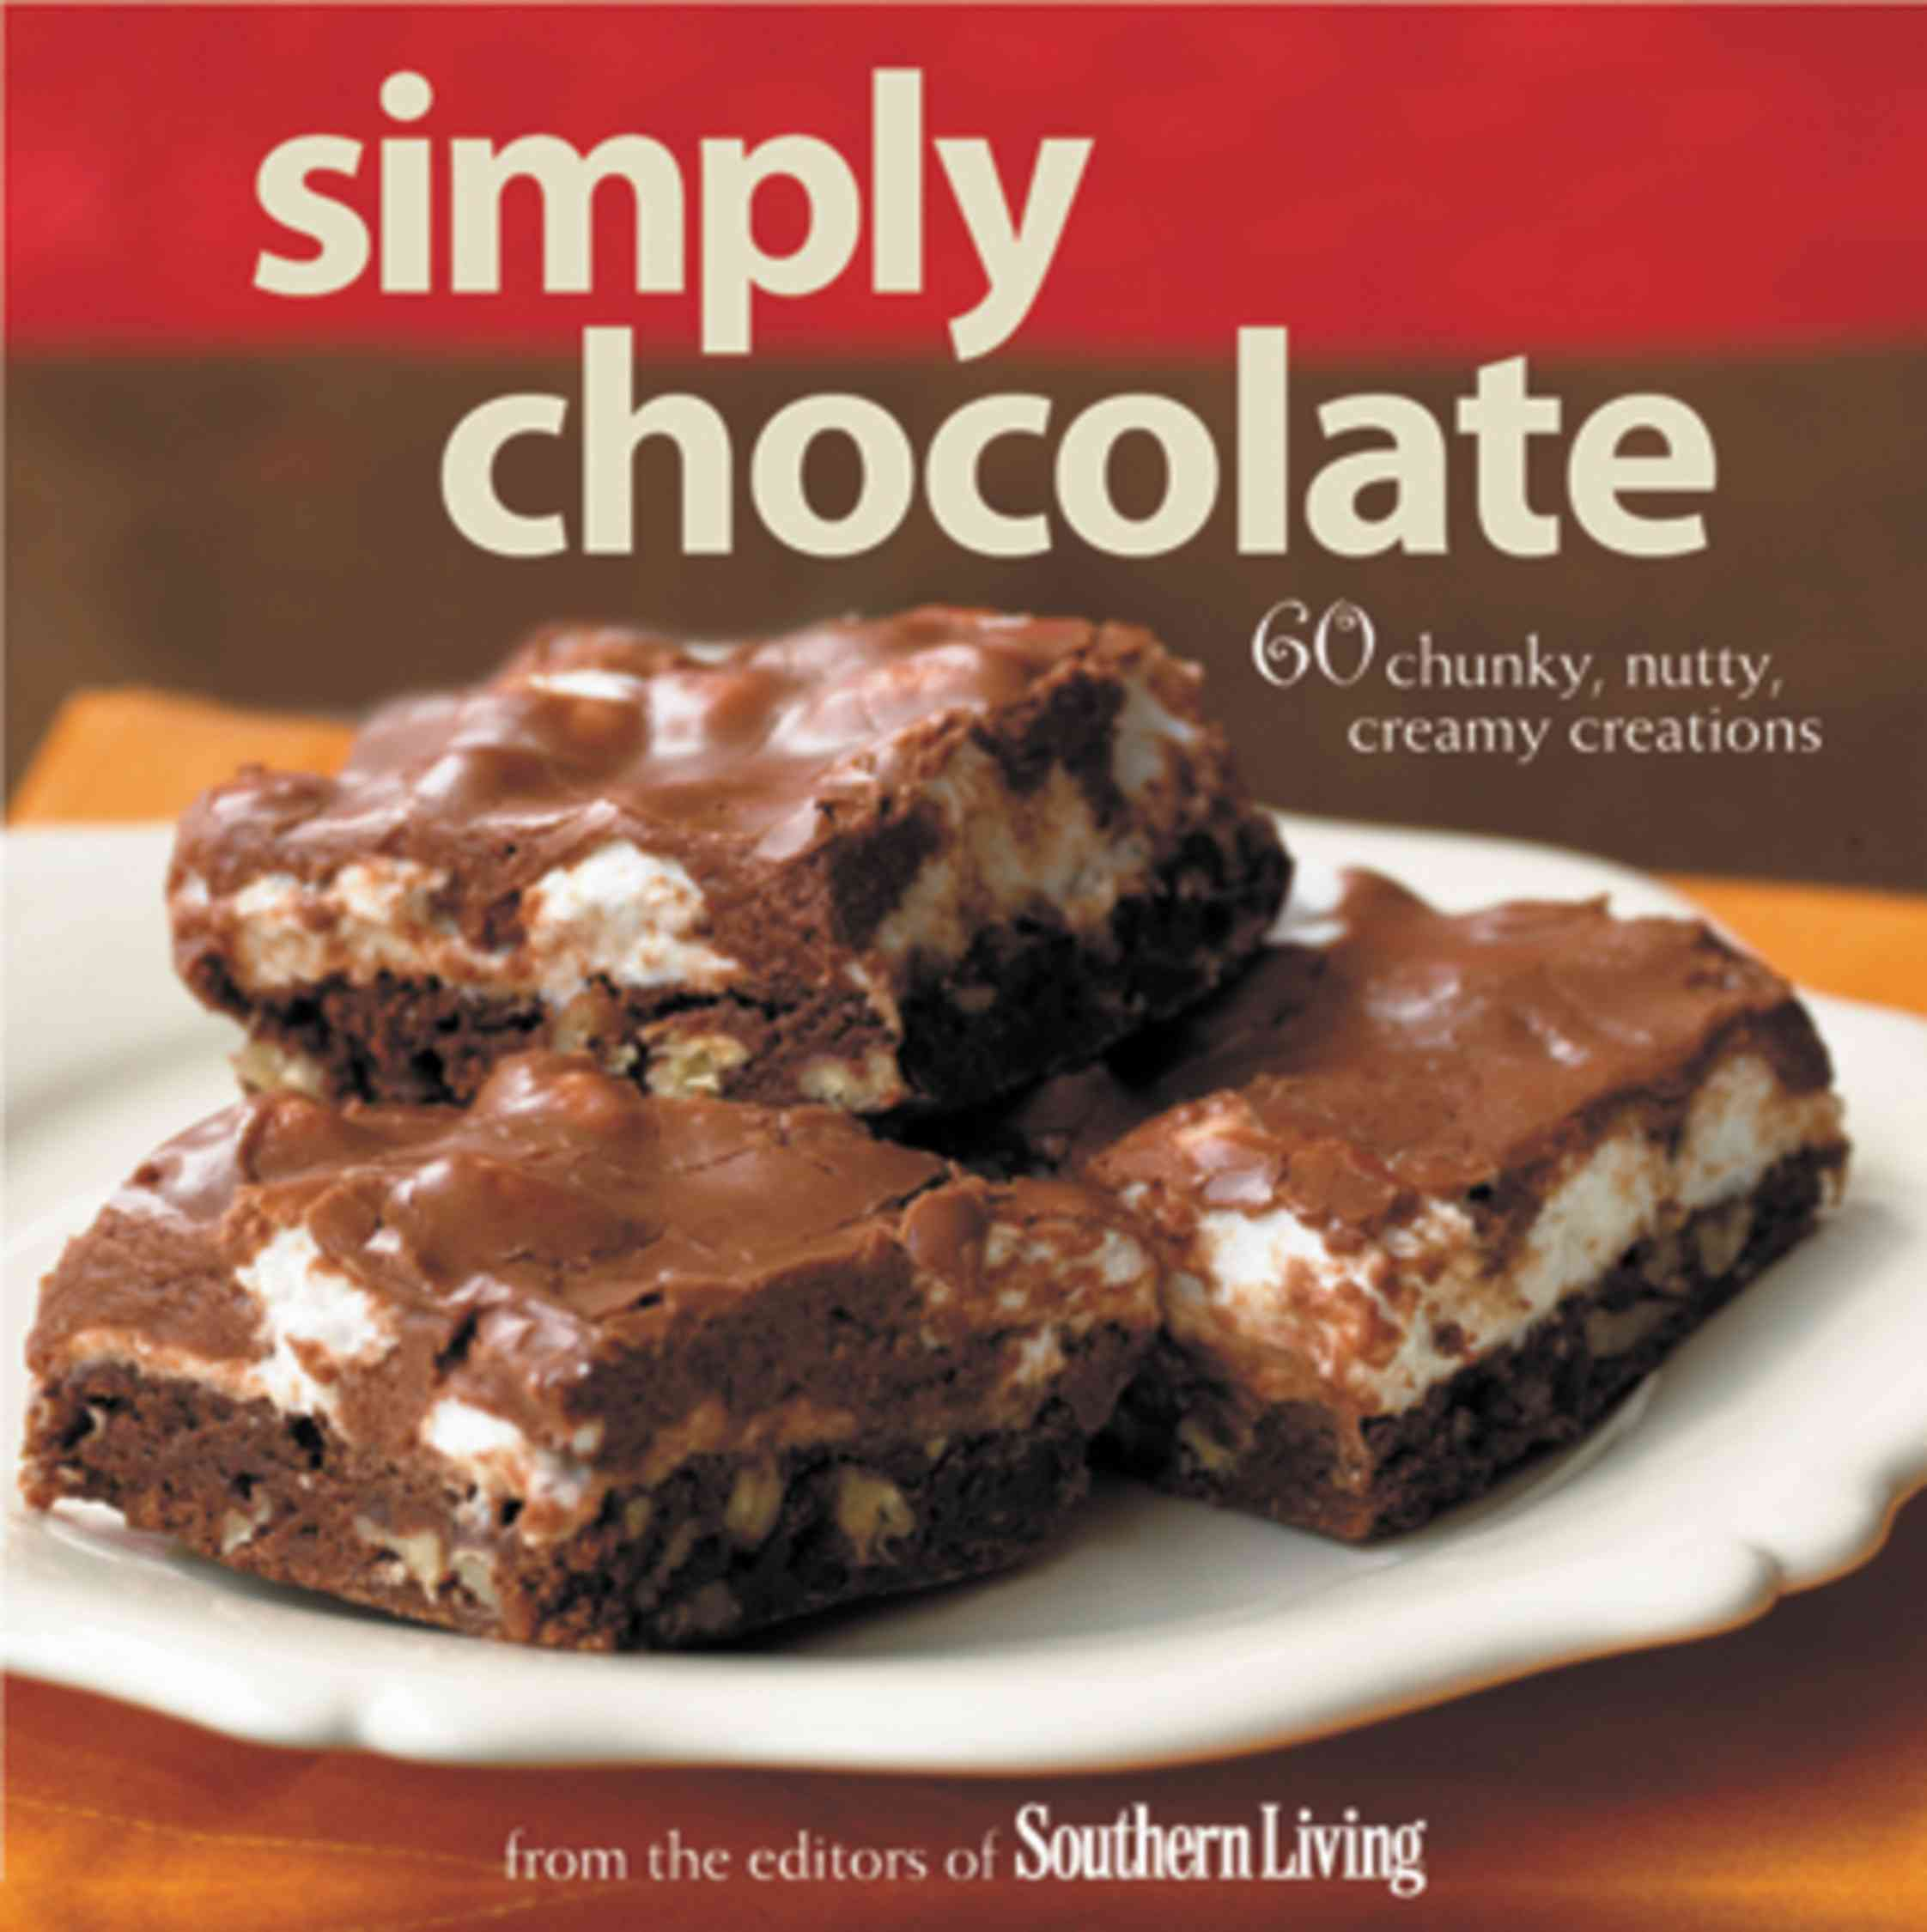 Simply Chocolate: 60 Chunky, Nutty, Creamy Creations (Hardcover)